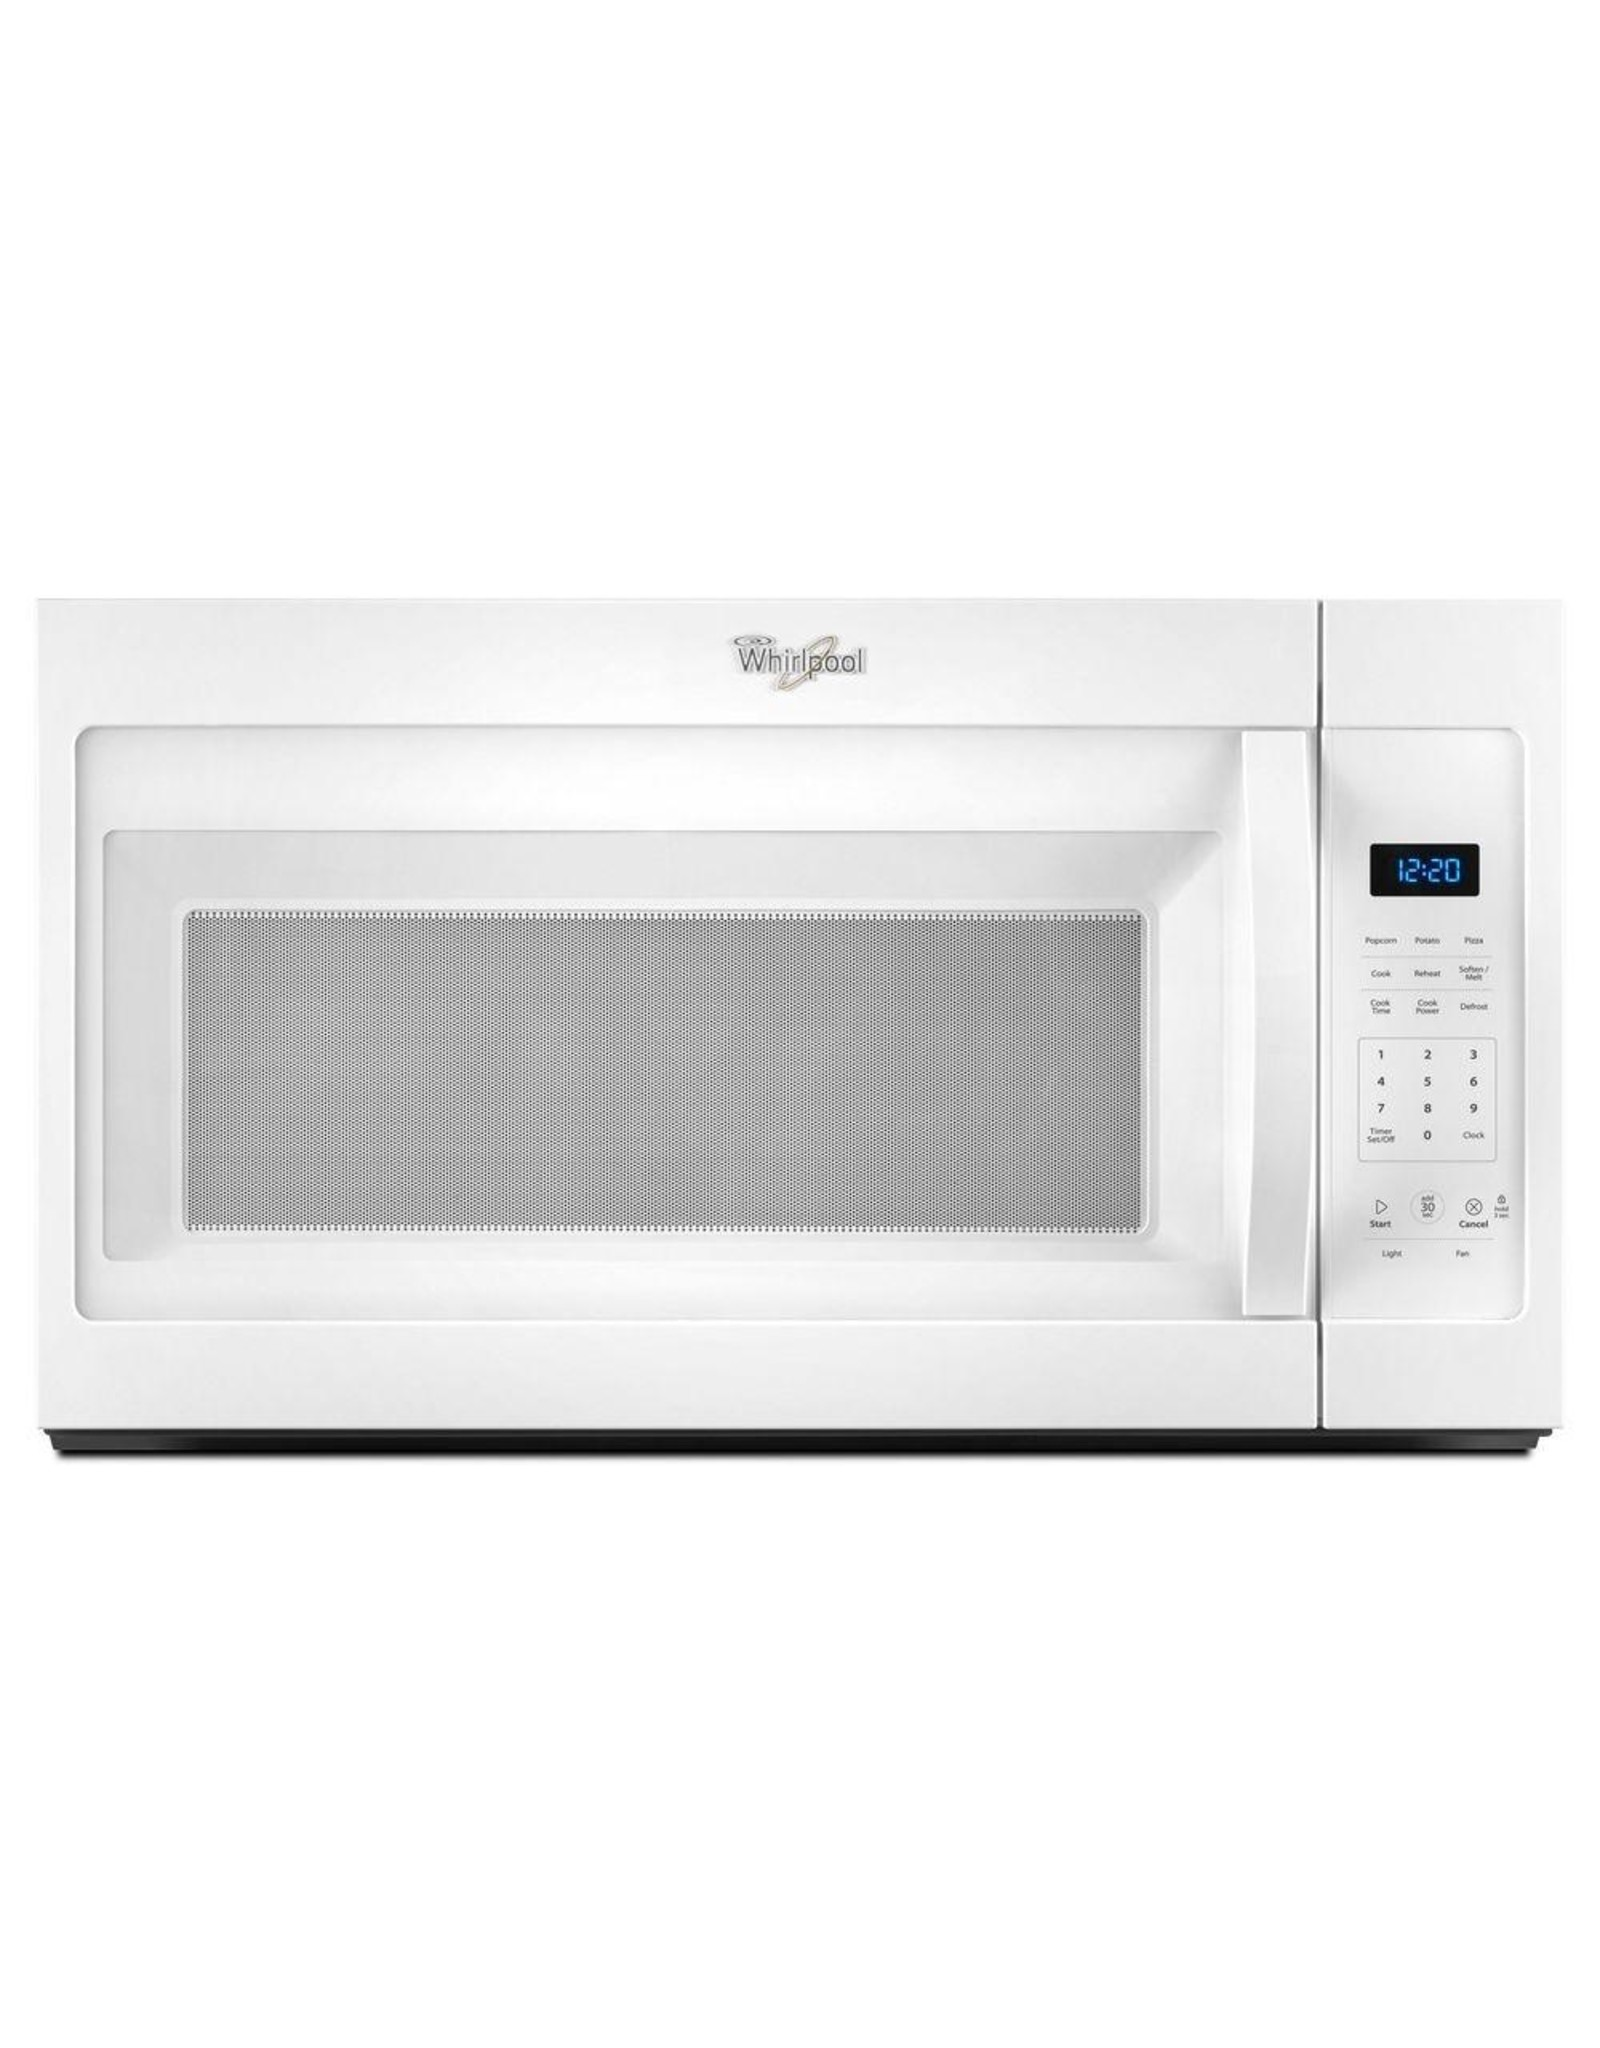 whirlpool wmh31017fw whr microwave hood combination 1 7 cu ft 1000 watts 2 piece front st